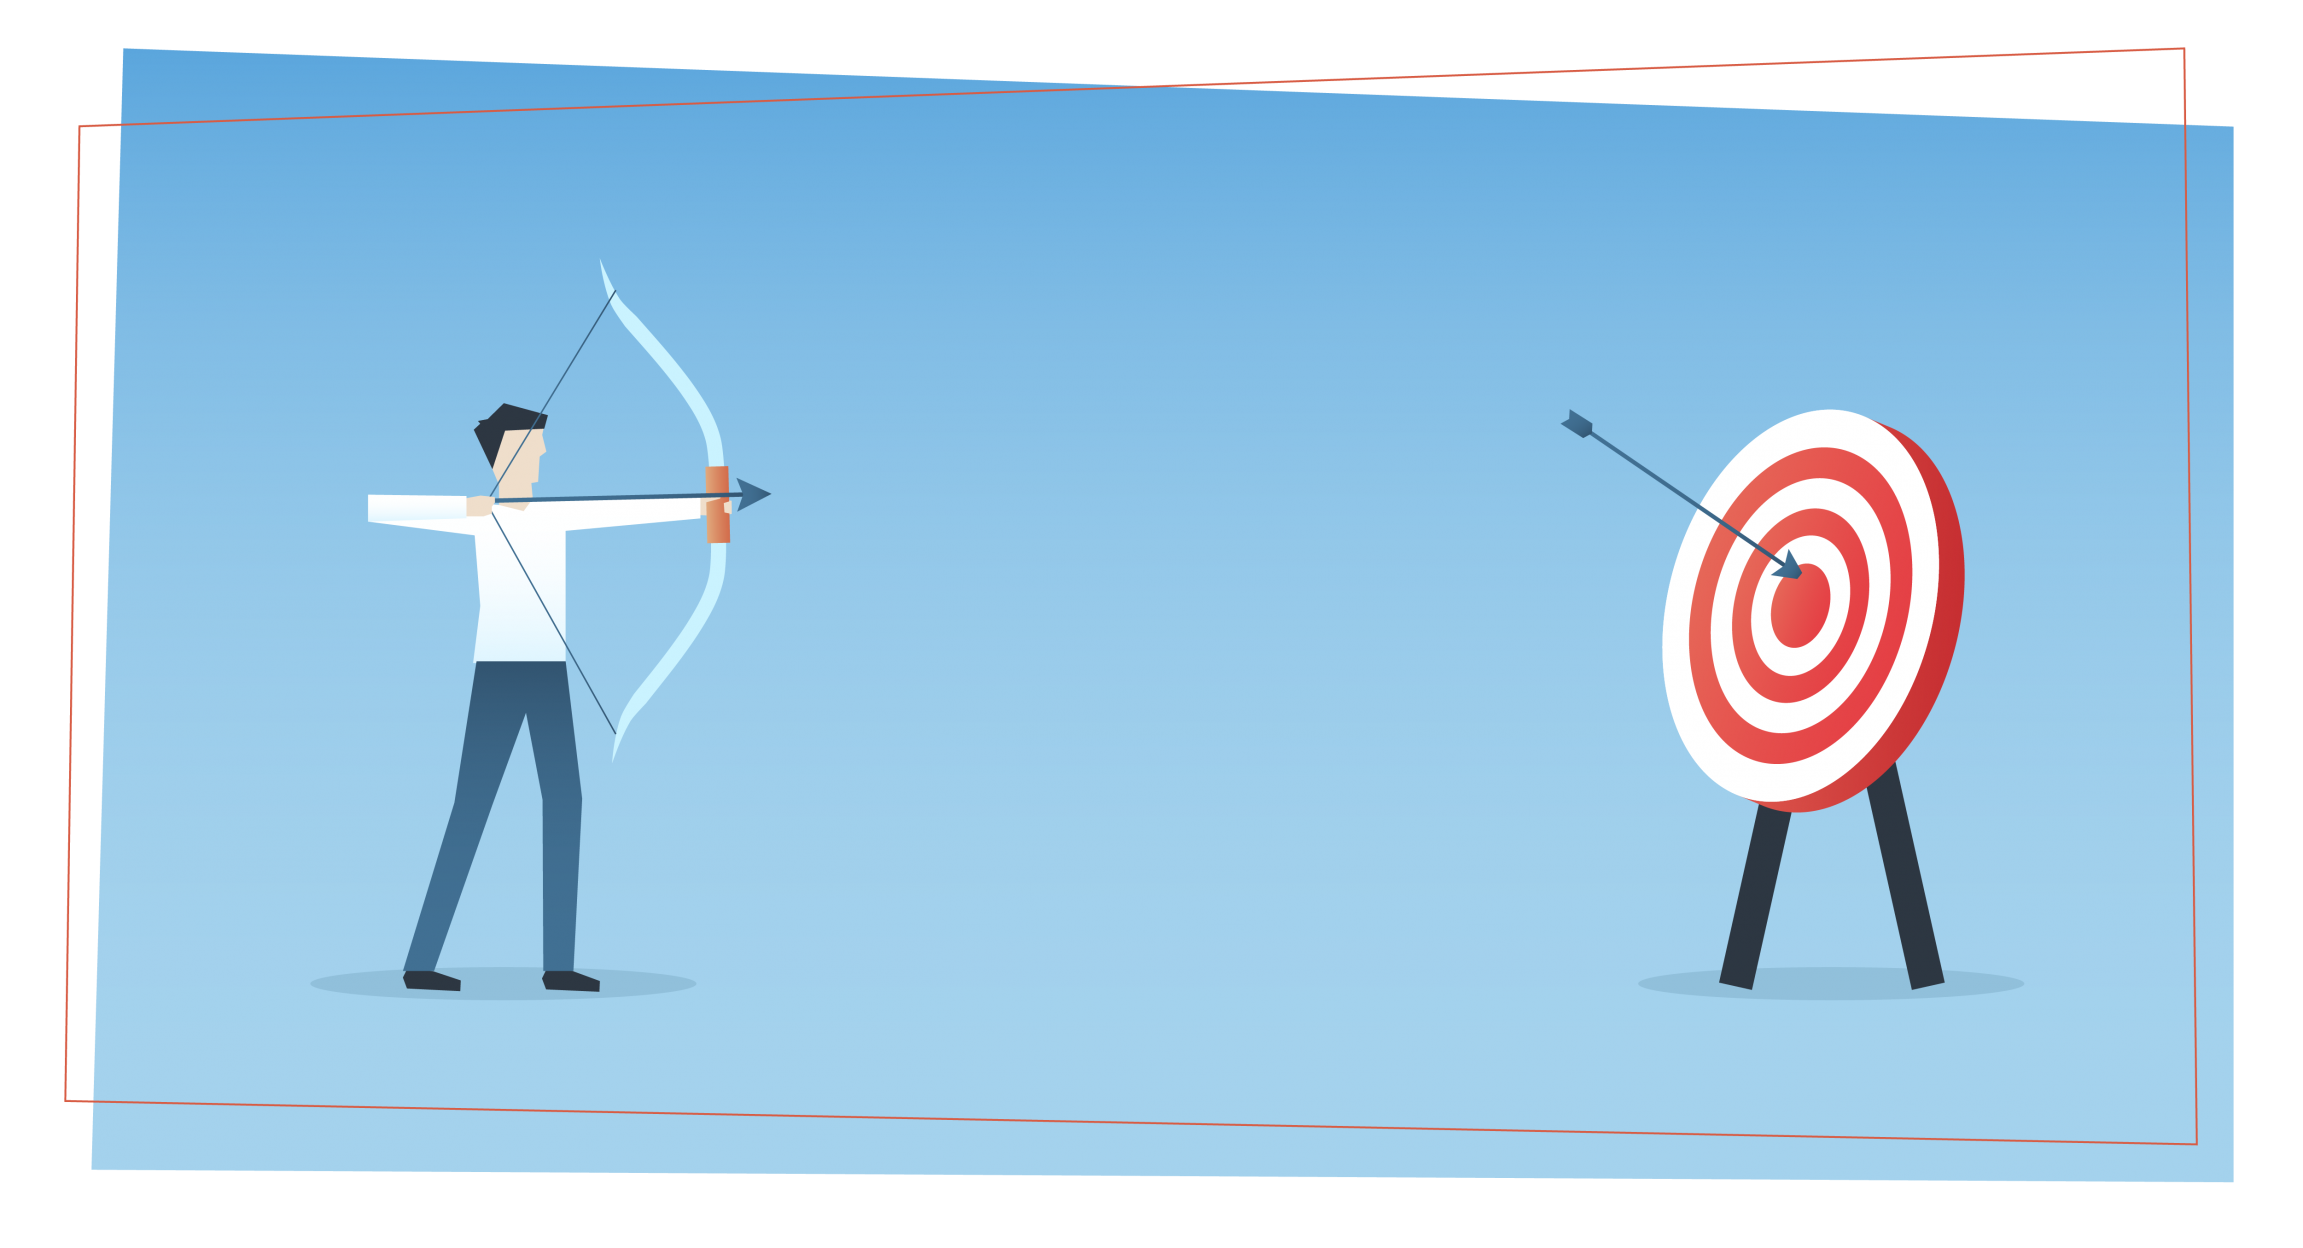 a man shoots arrows from a bow at a large target